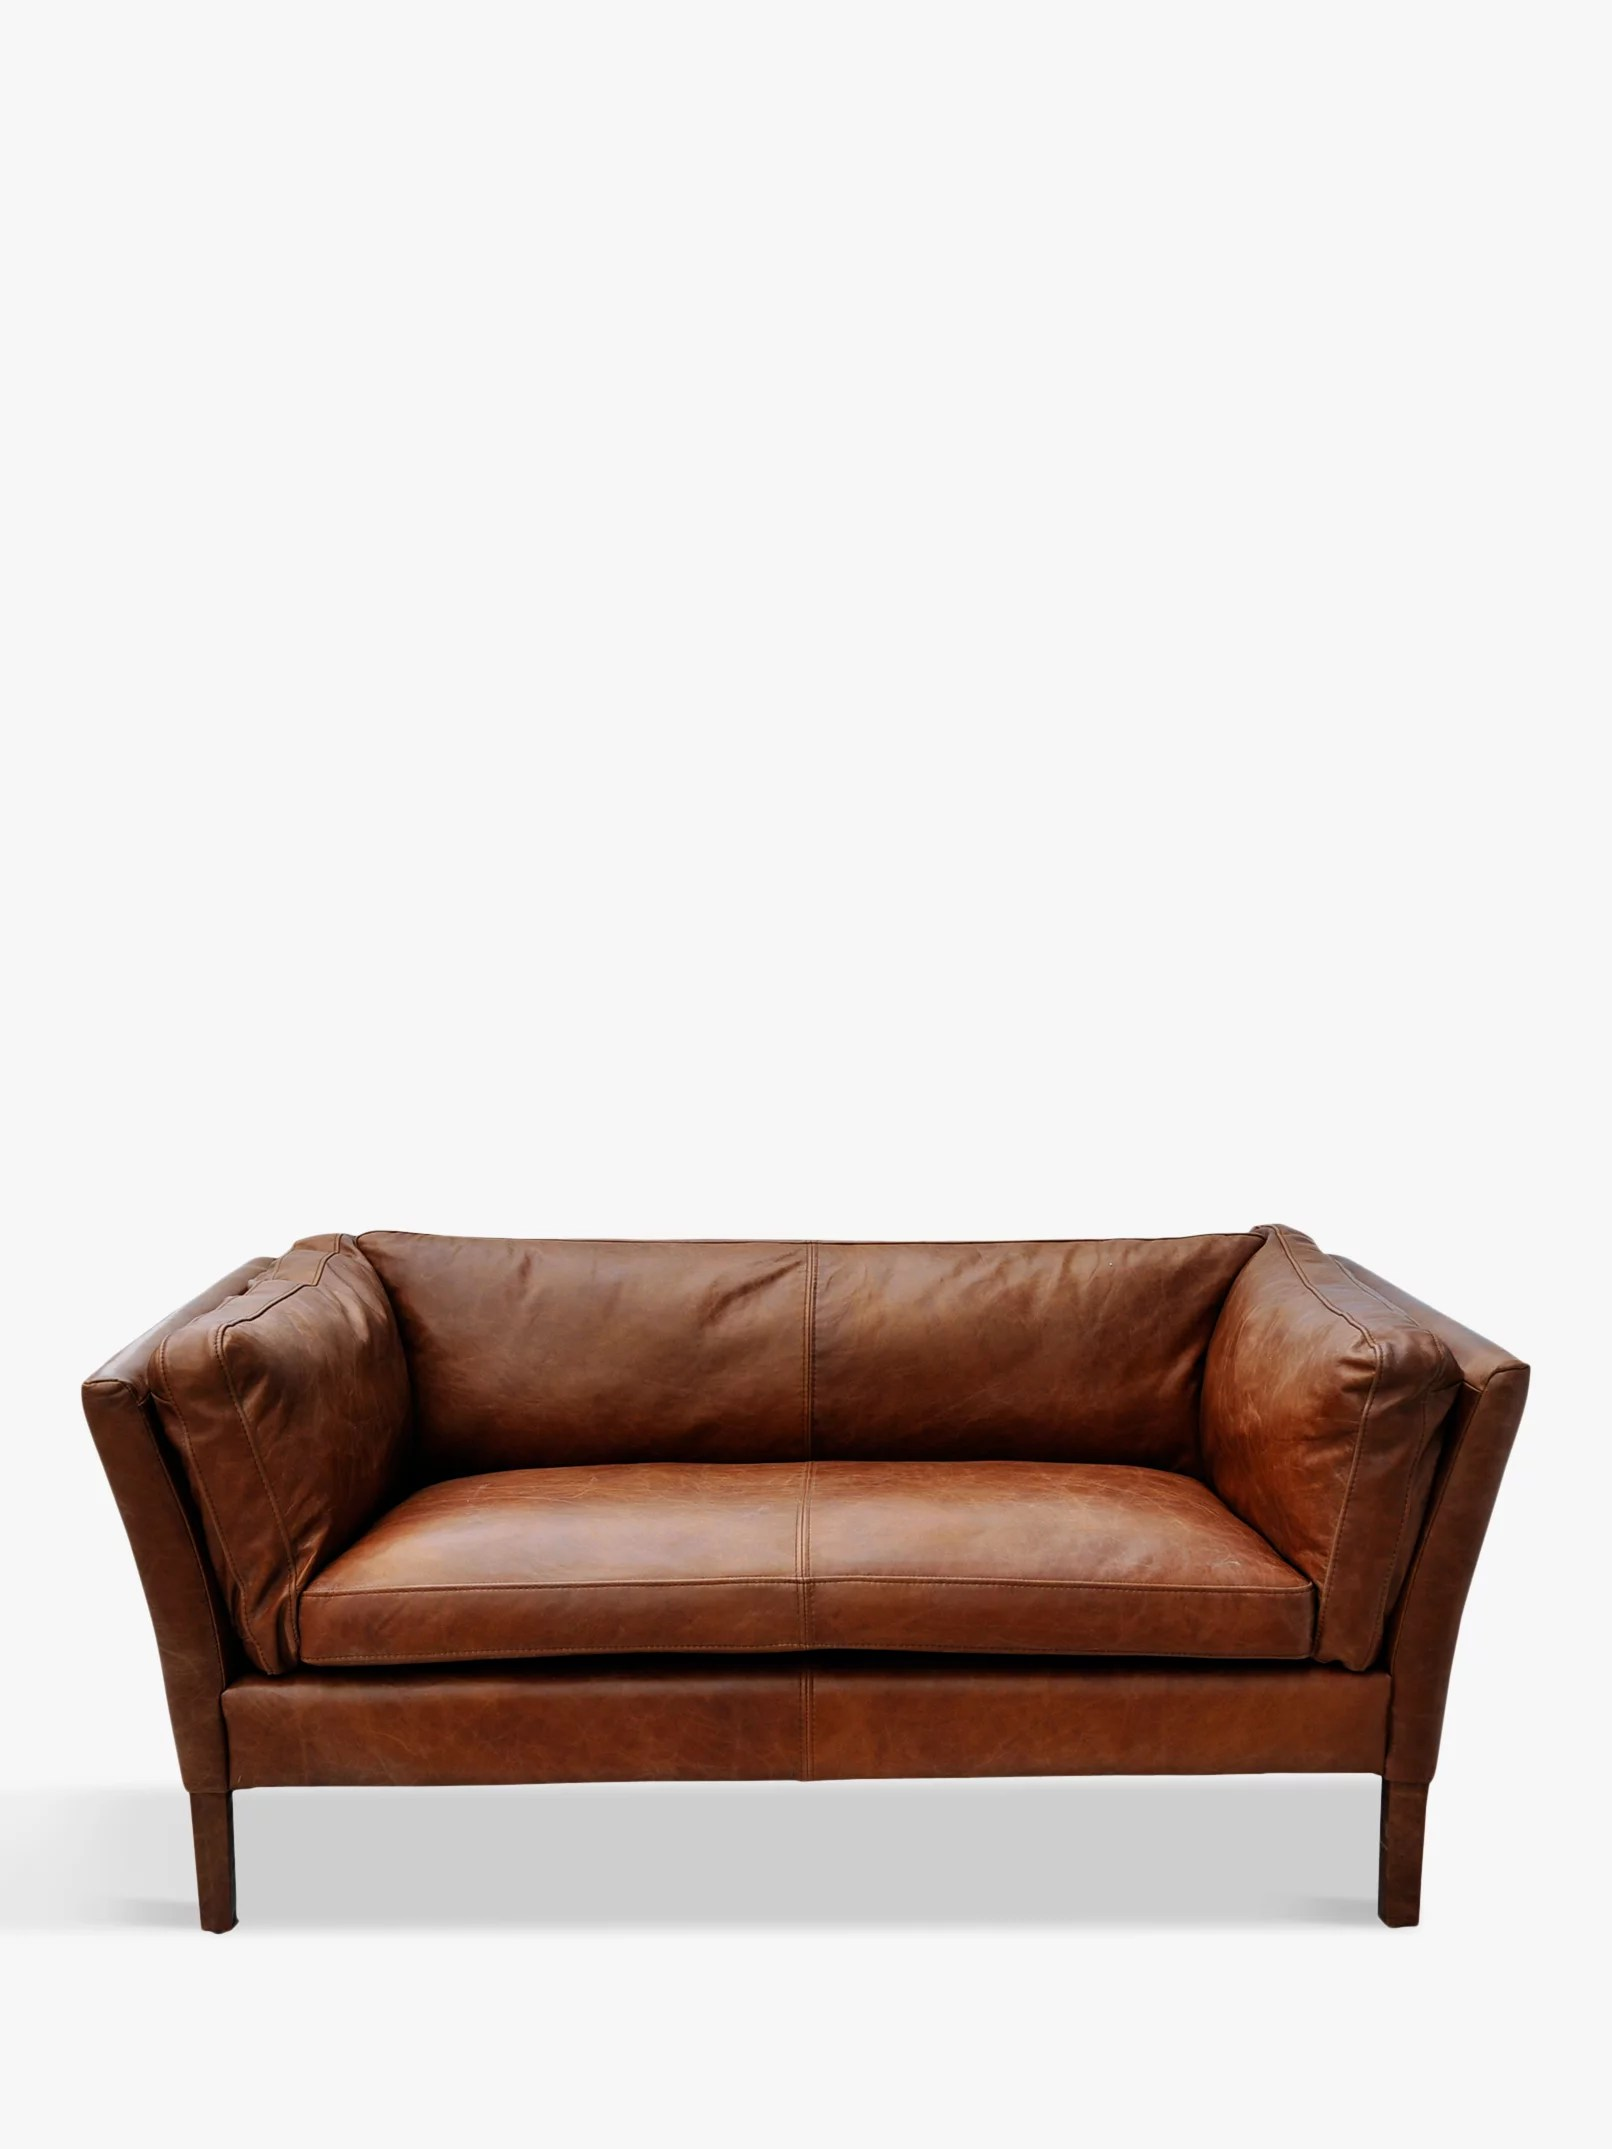 scotch and sofa innovative bed halo groucho small aniline leather at john lewis